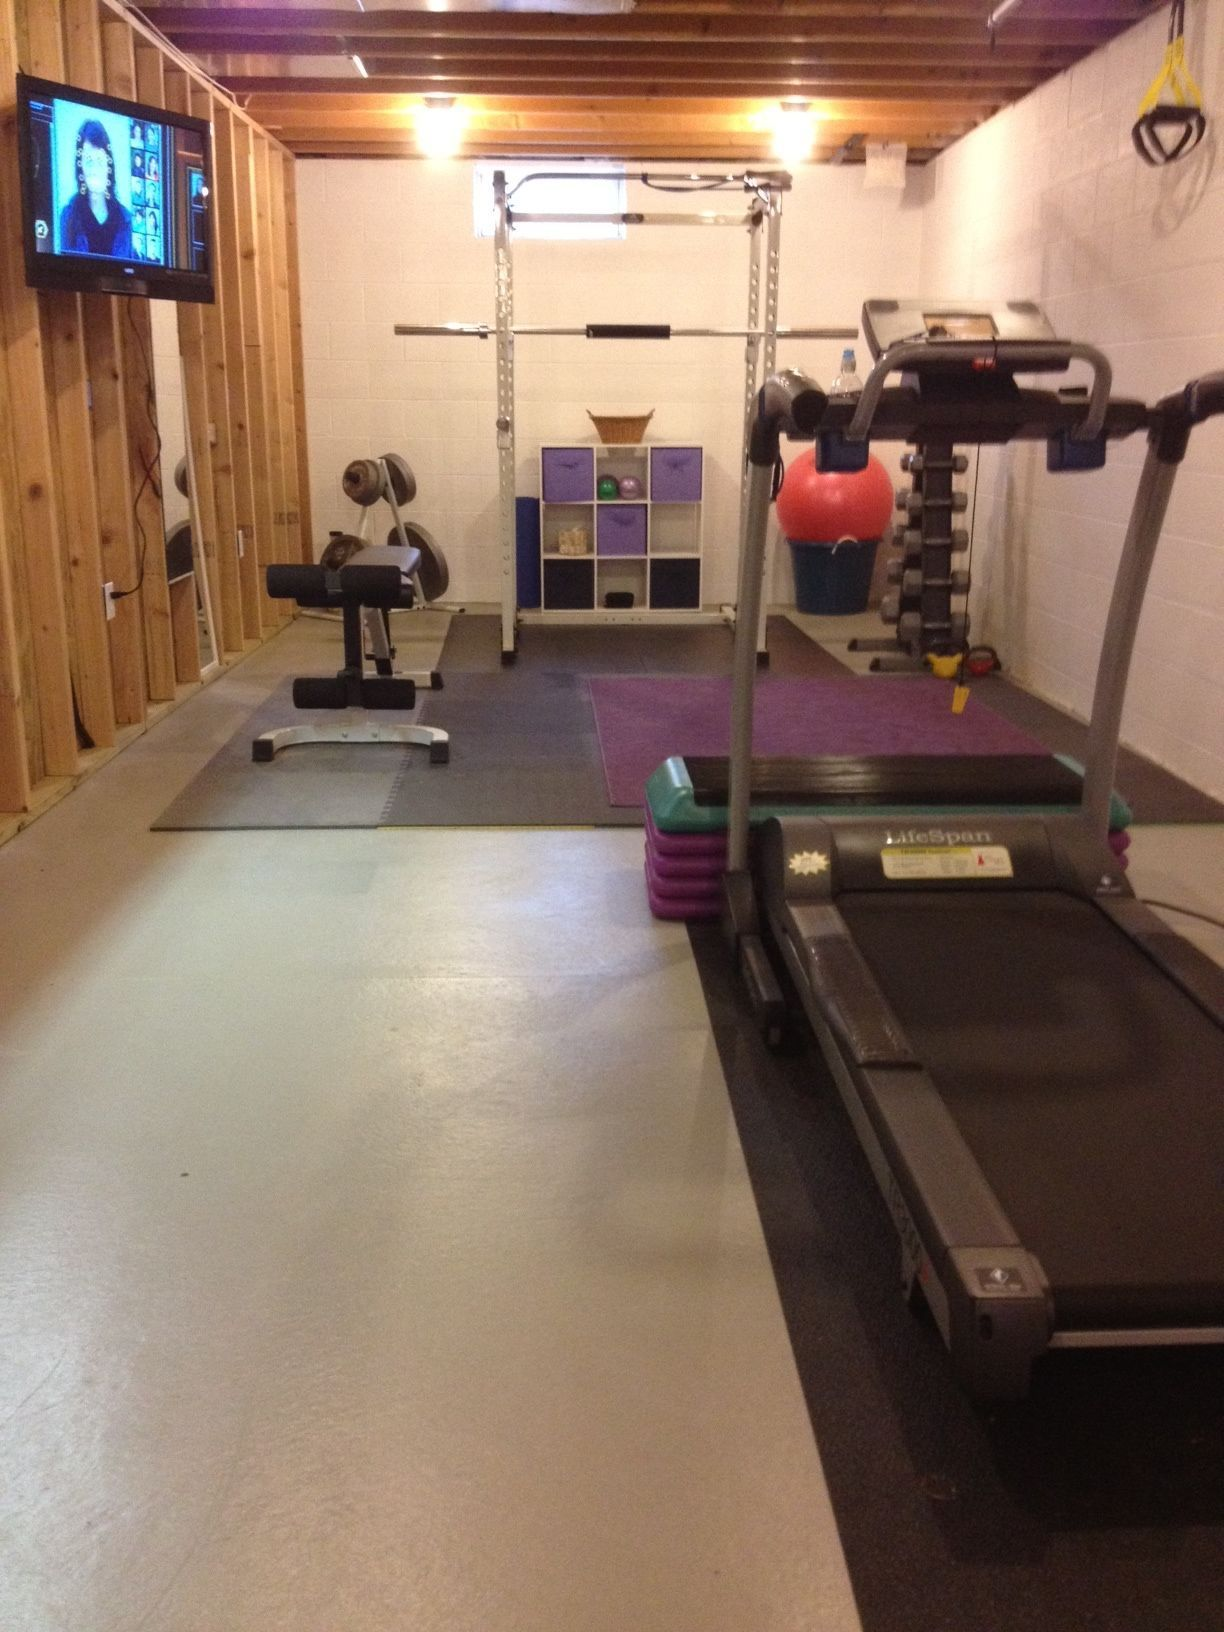 Inspirational garage gyms & ideas gallery pg 7 basement home gym